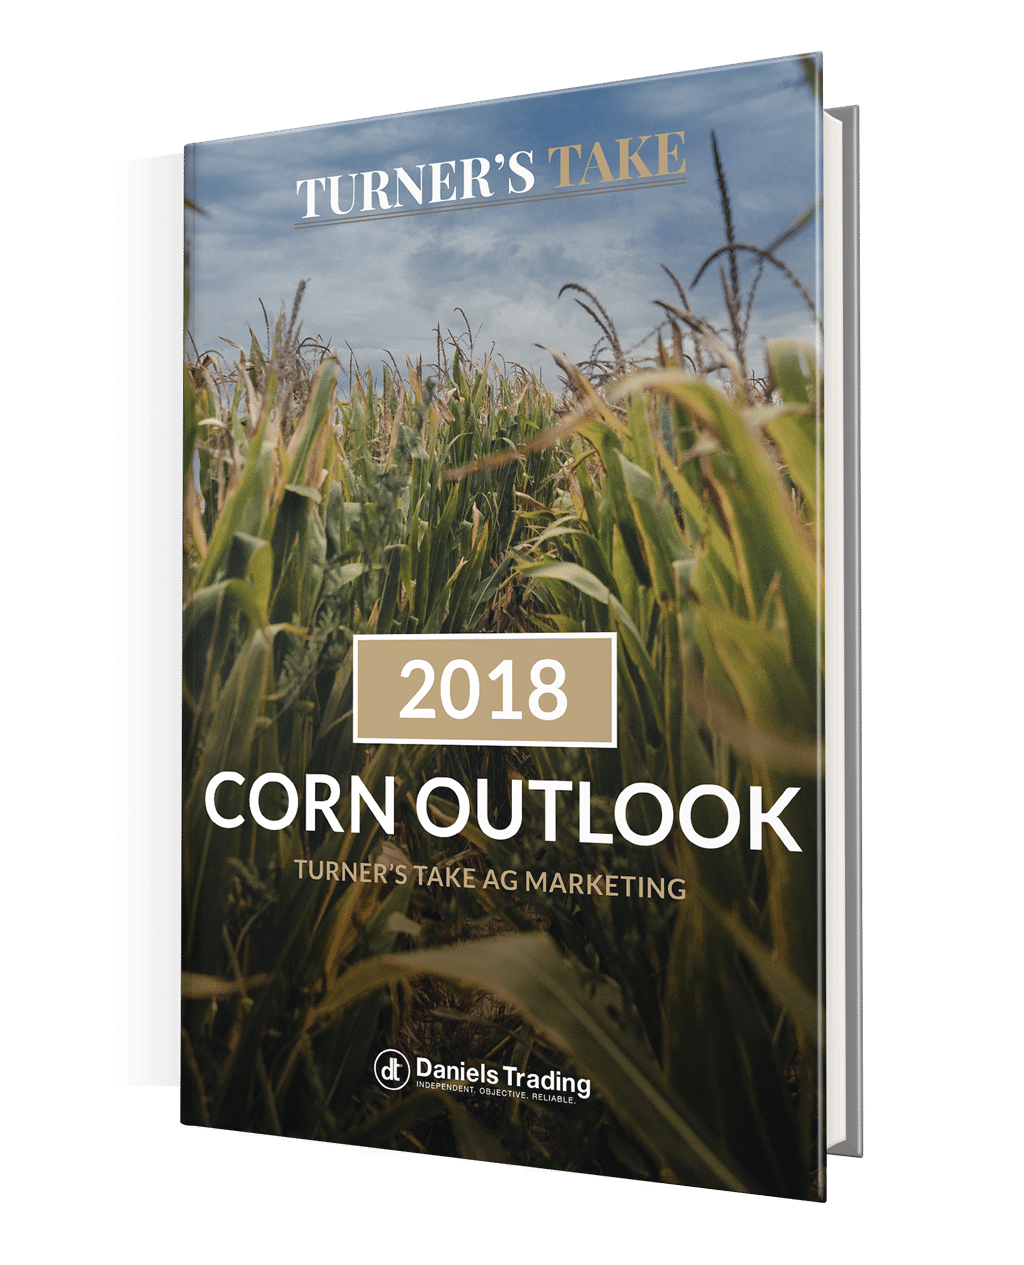 Turner's Take Ag Marketing | 2018 Corn Outlook